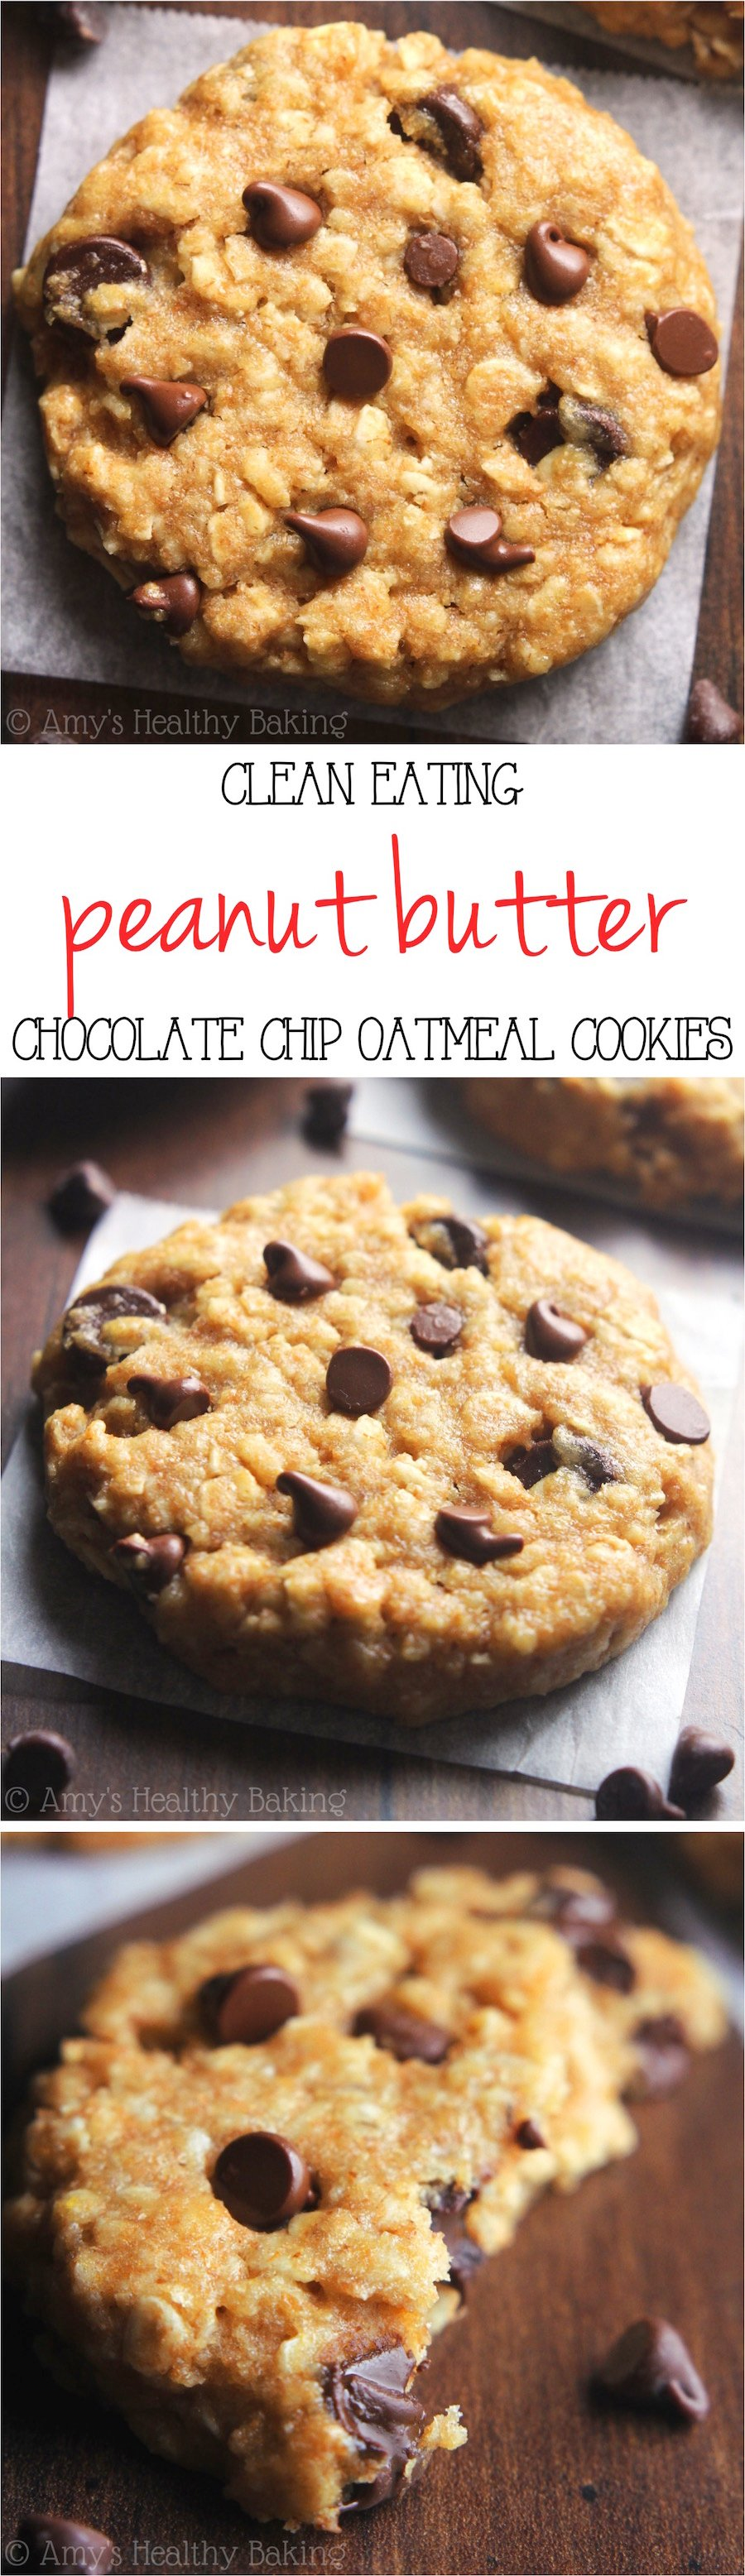 Chocolate Chip Peanut Butter Oatmeal Cookies Recipe Video Amy 39 S Healthy Baking